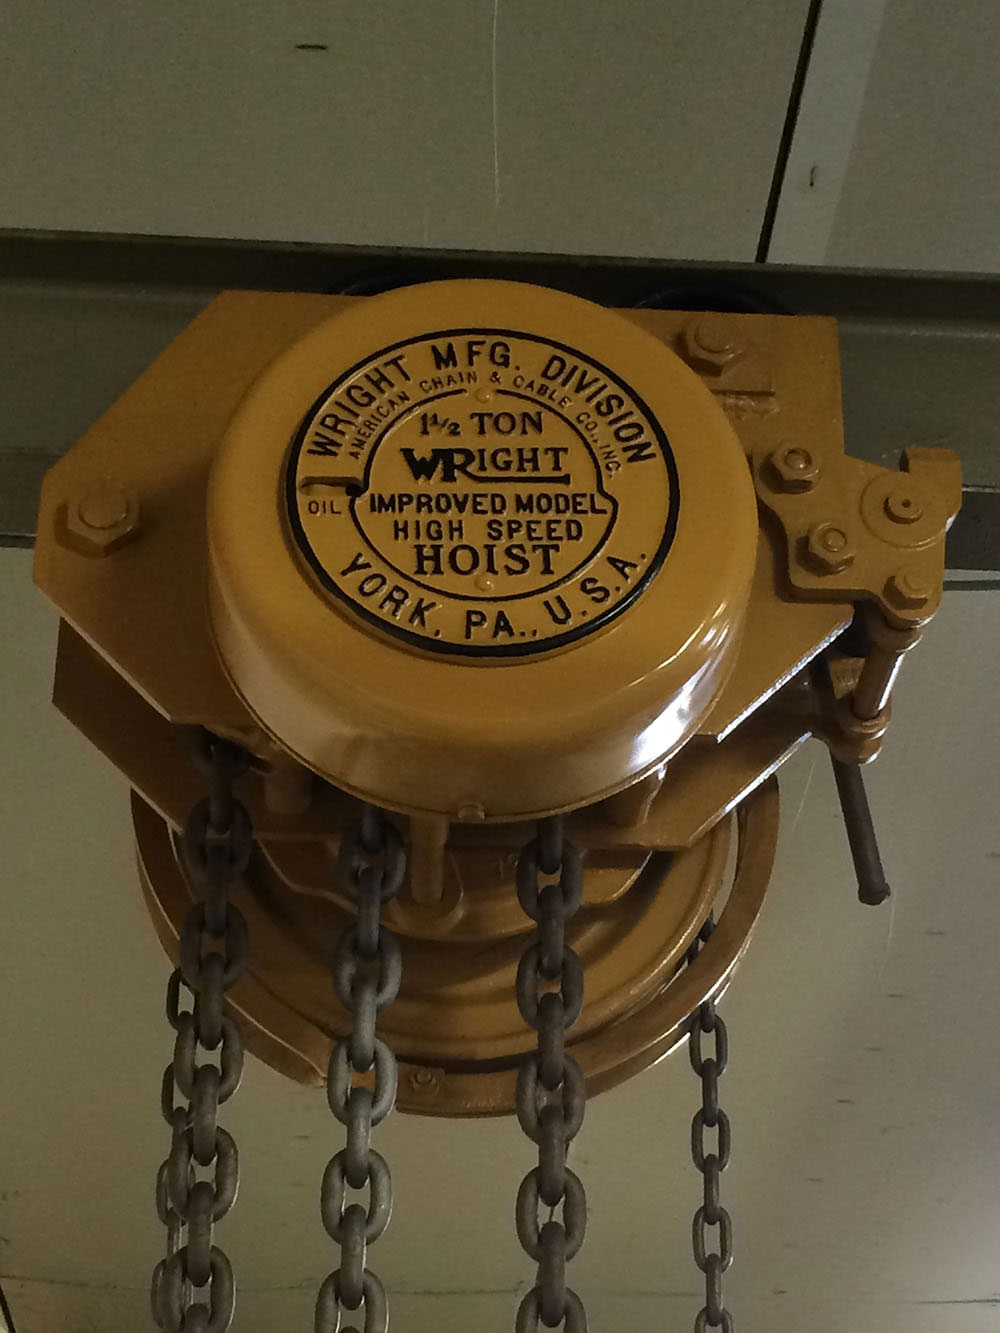 Wright 1 1/2 Ton Reconditioned Chain-Hoist